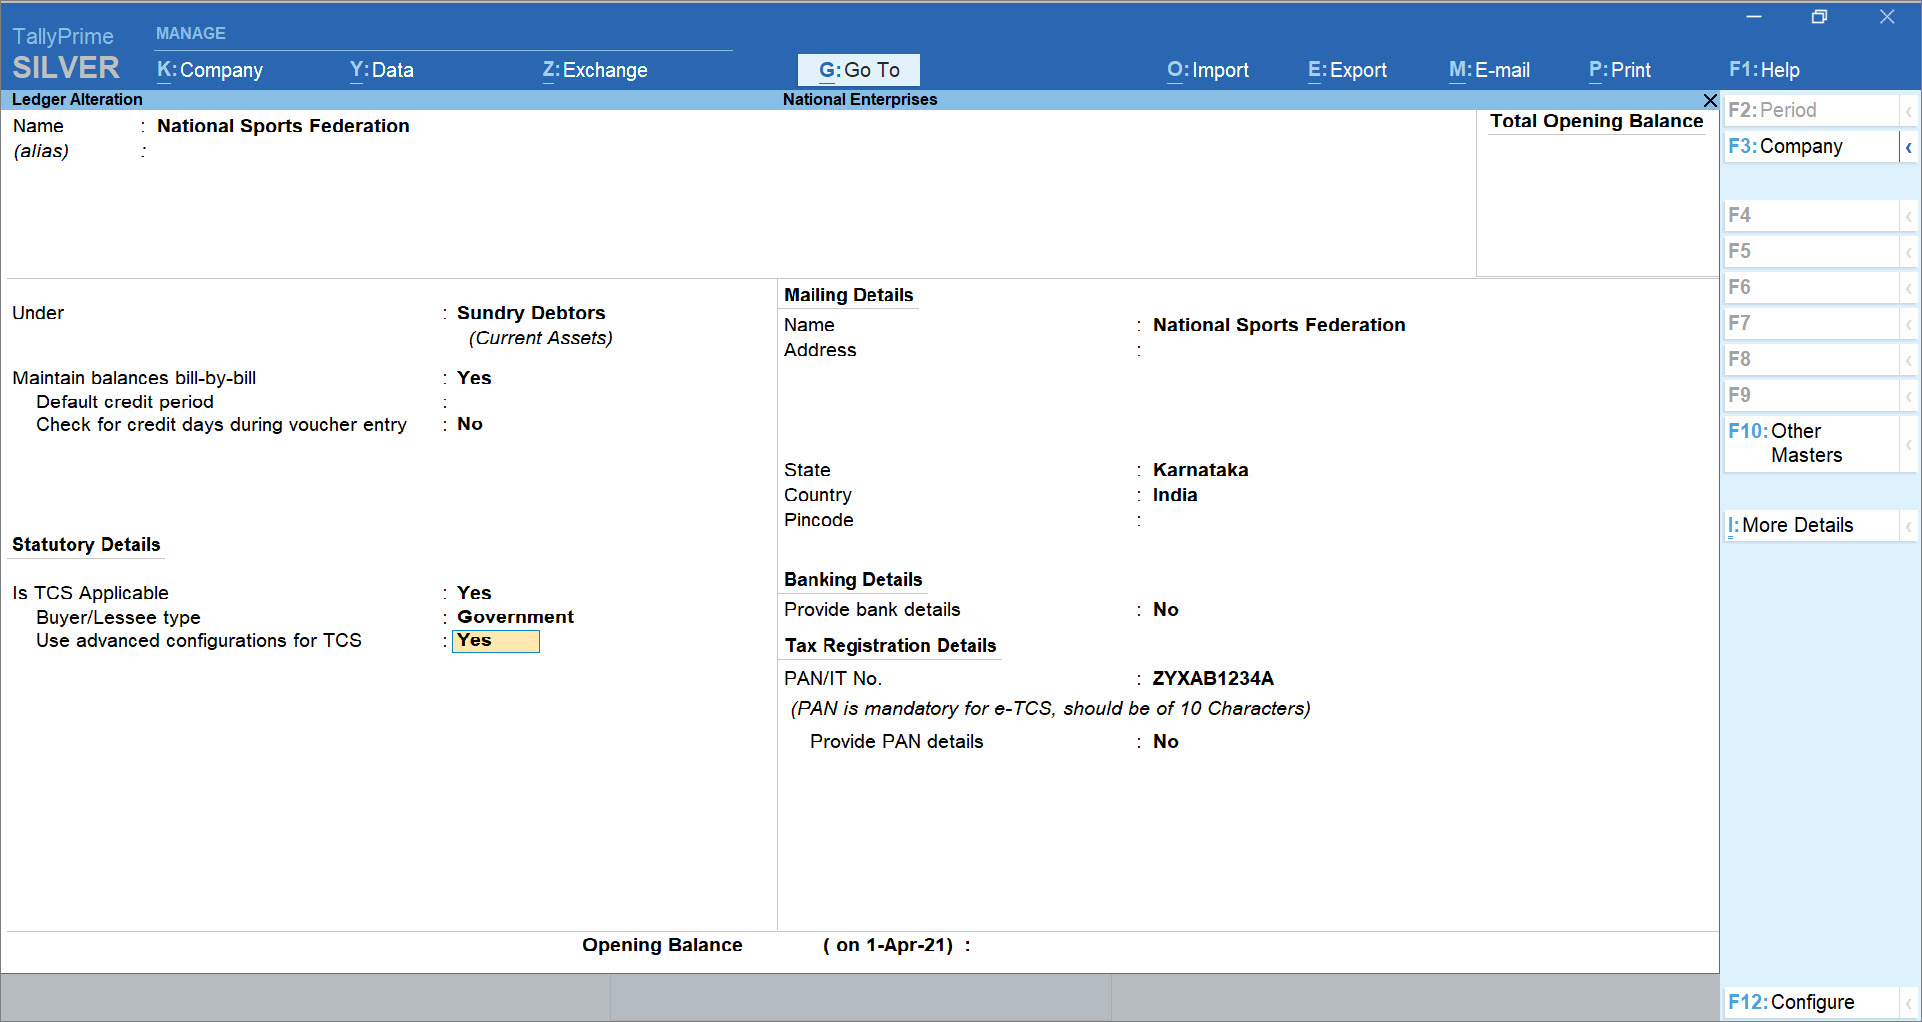 Use advanced configurations for TCS set to Yes in Listed Collectee Party Ledger